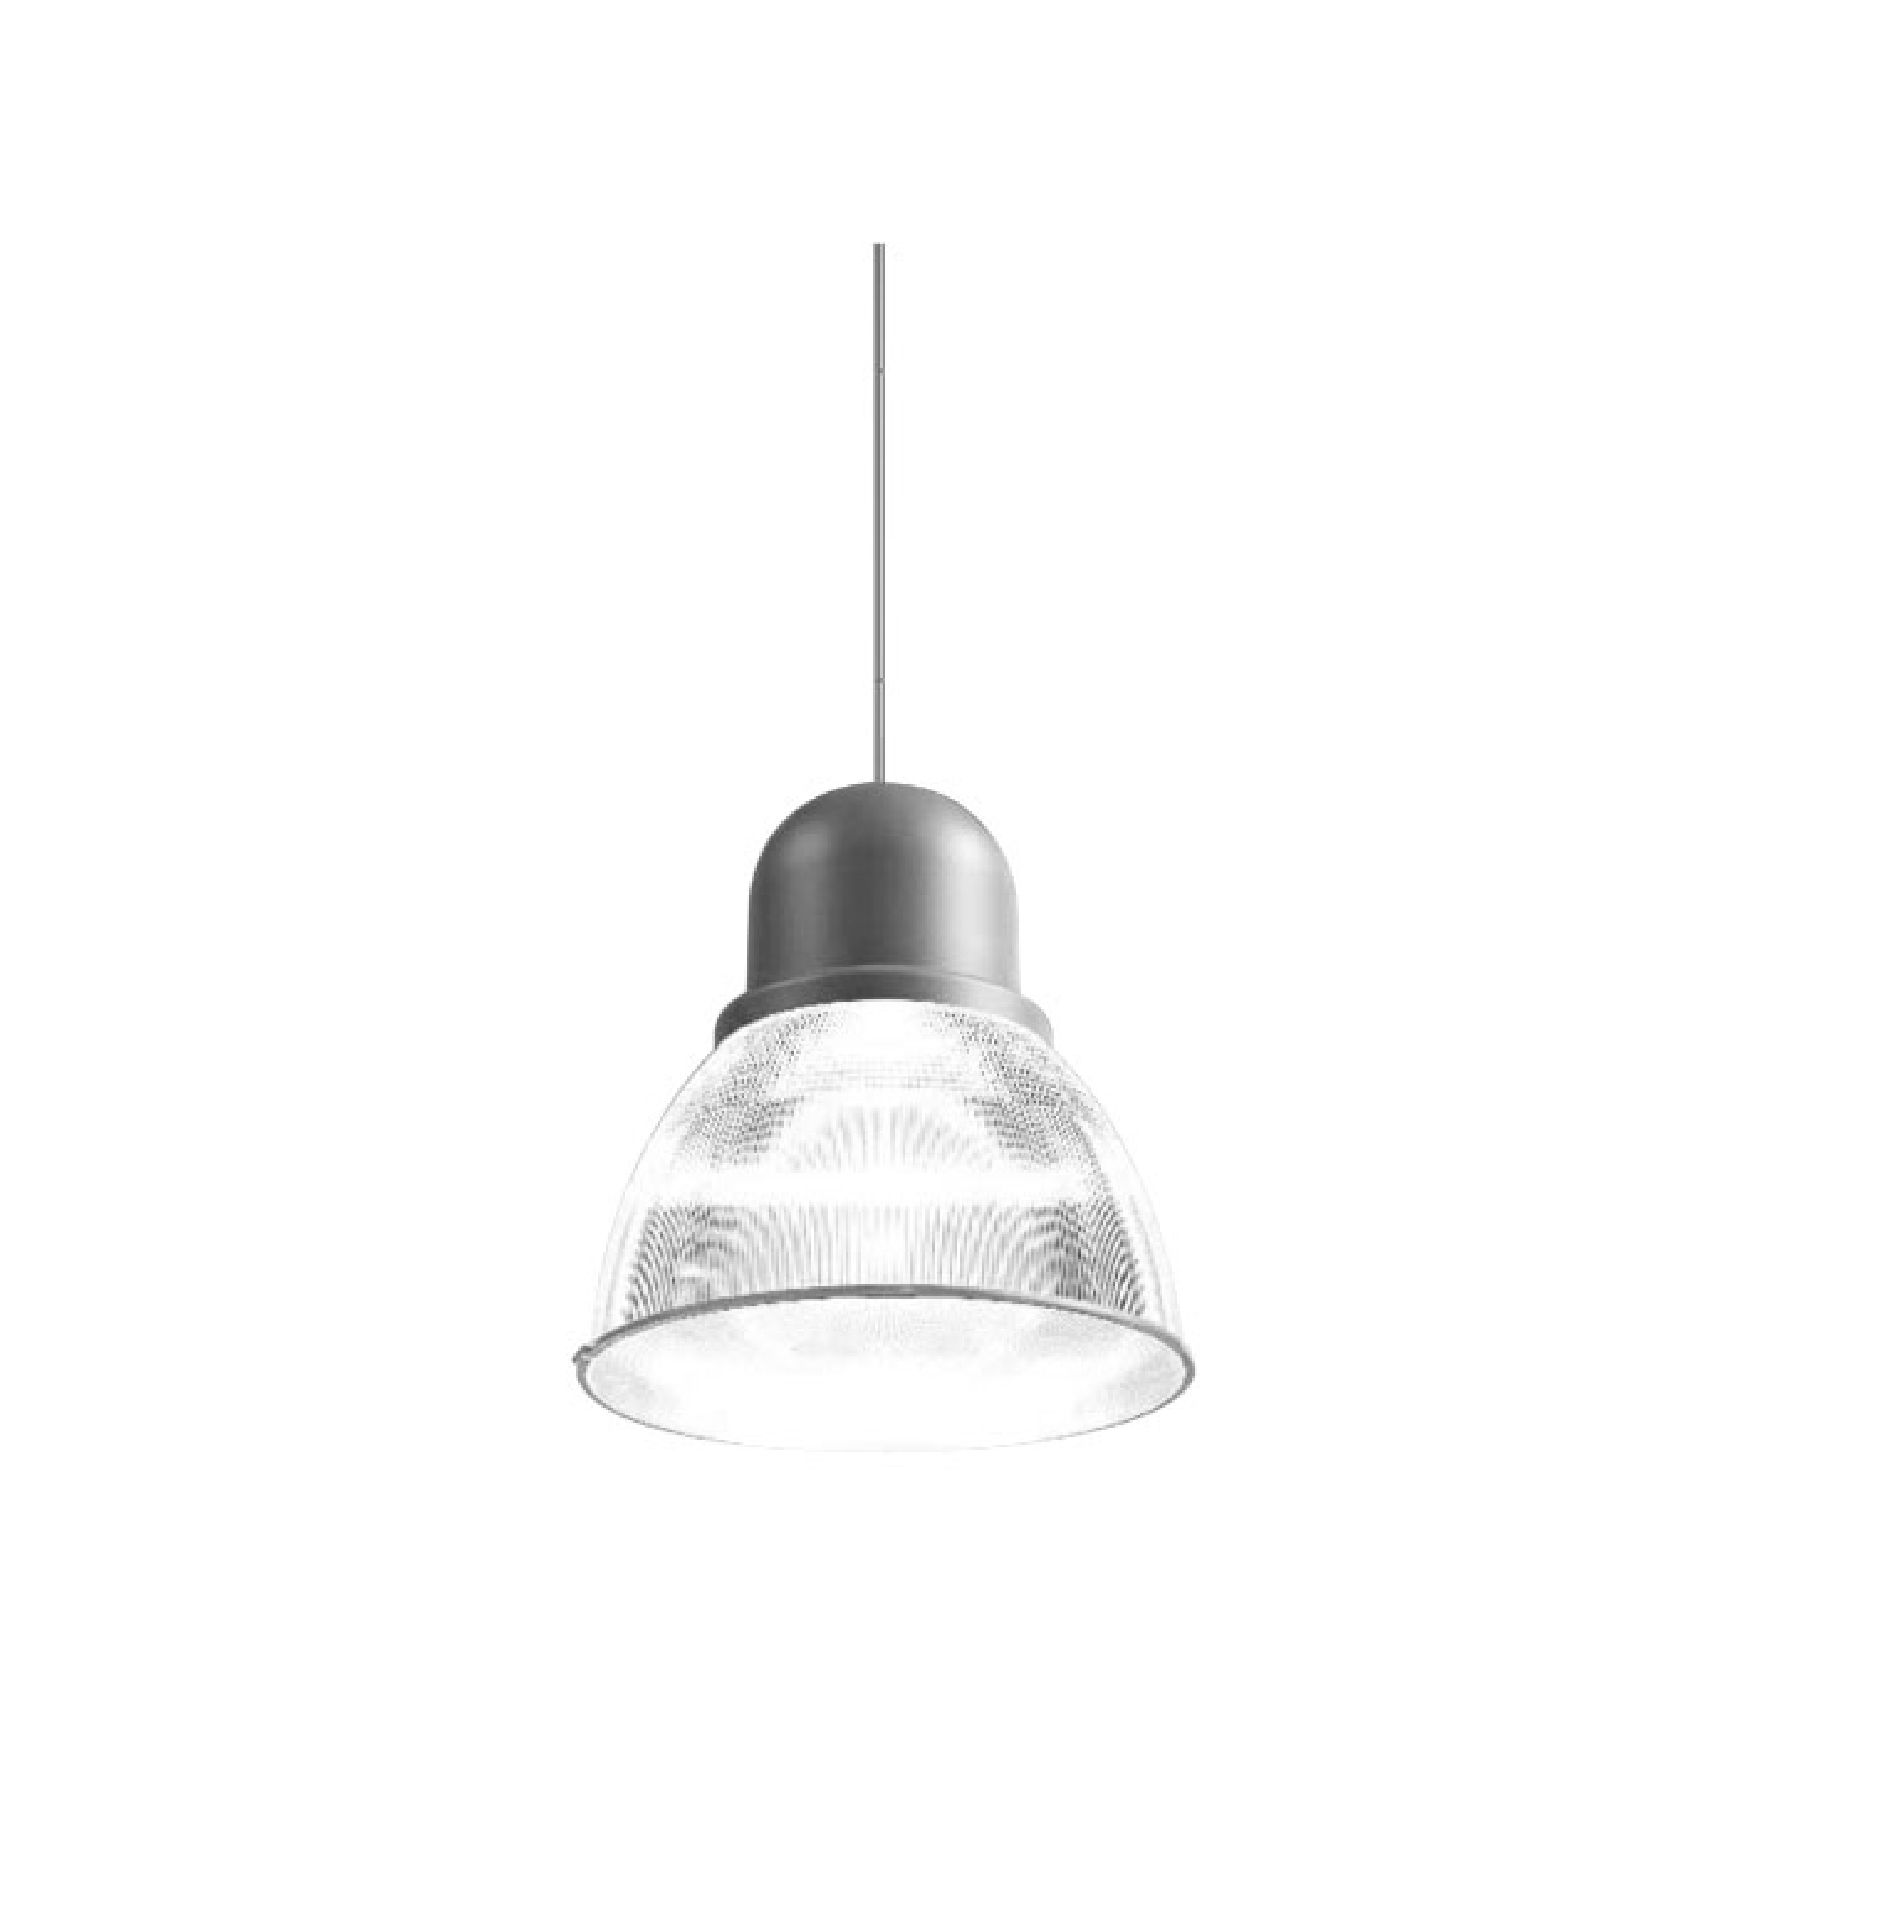 Alcon Lighting 15204 Hudson Architectural Round High Bay Pendant Fixture For Commercial Or Warehouse Lications